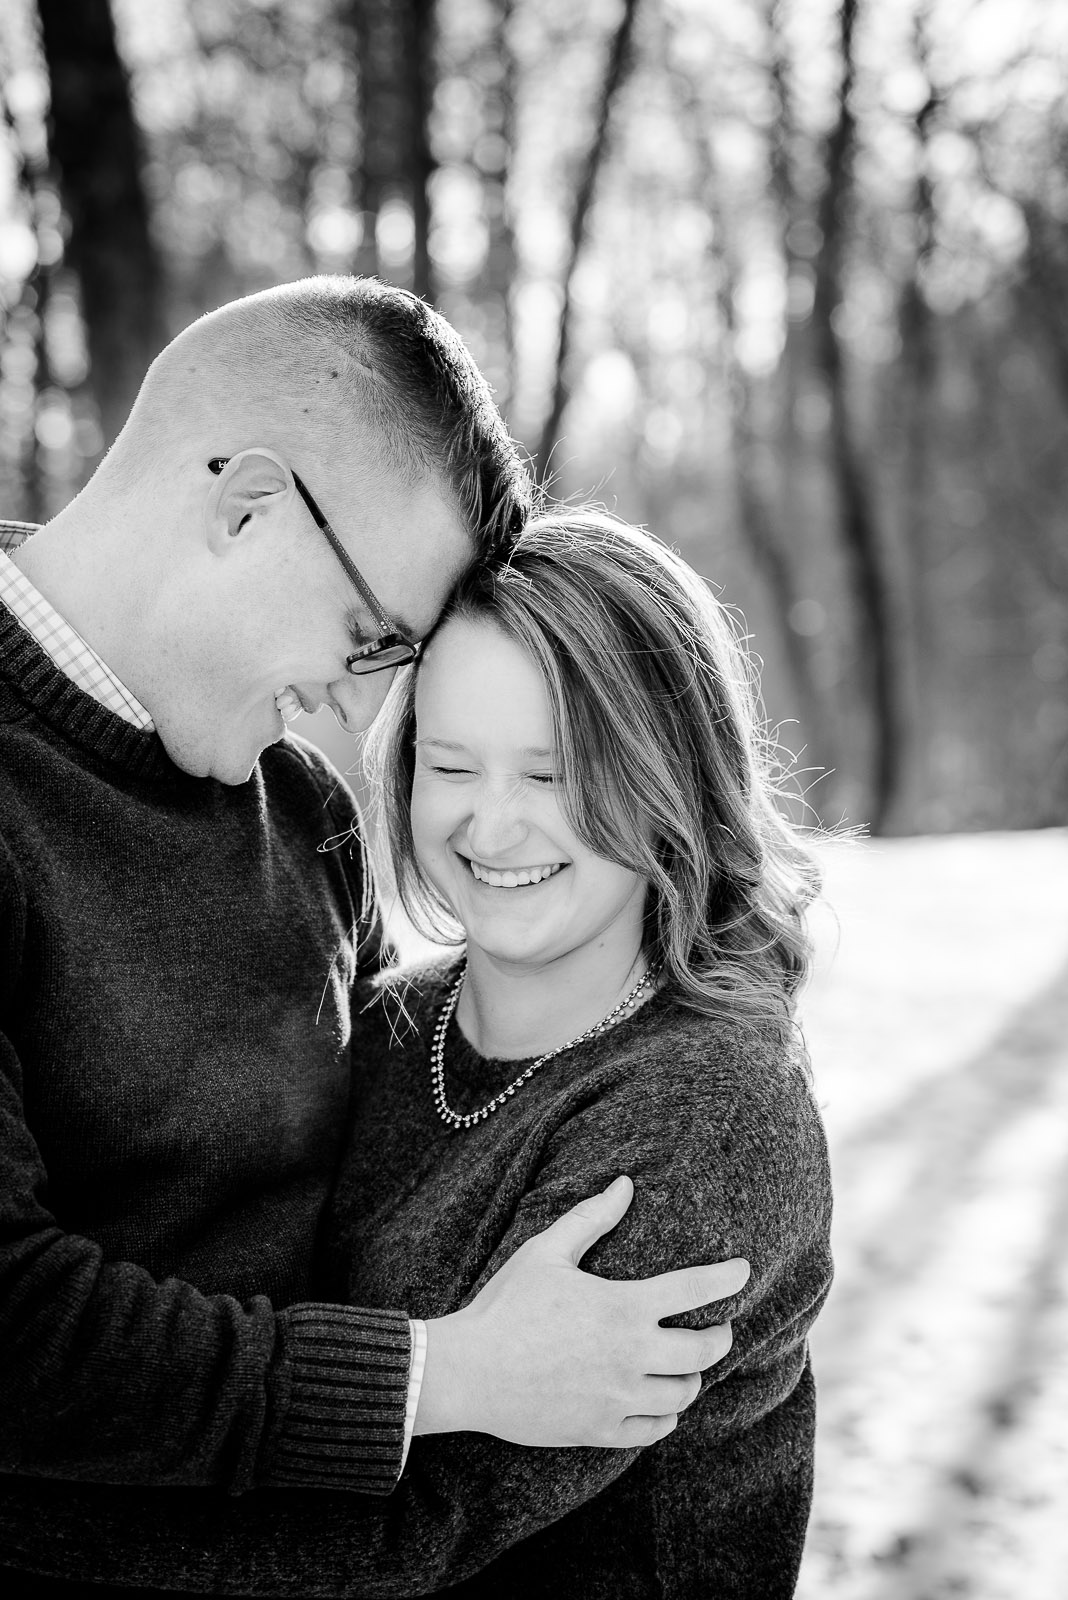 Eric_and_Christy_Photography_Blog_2017_Best_Engagement-9